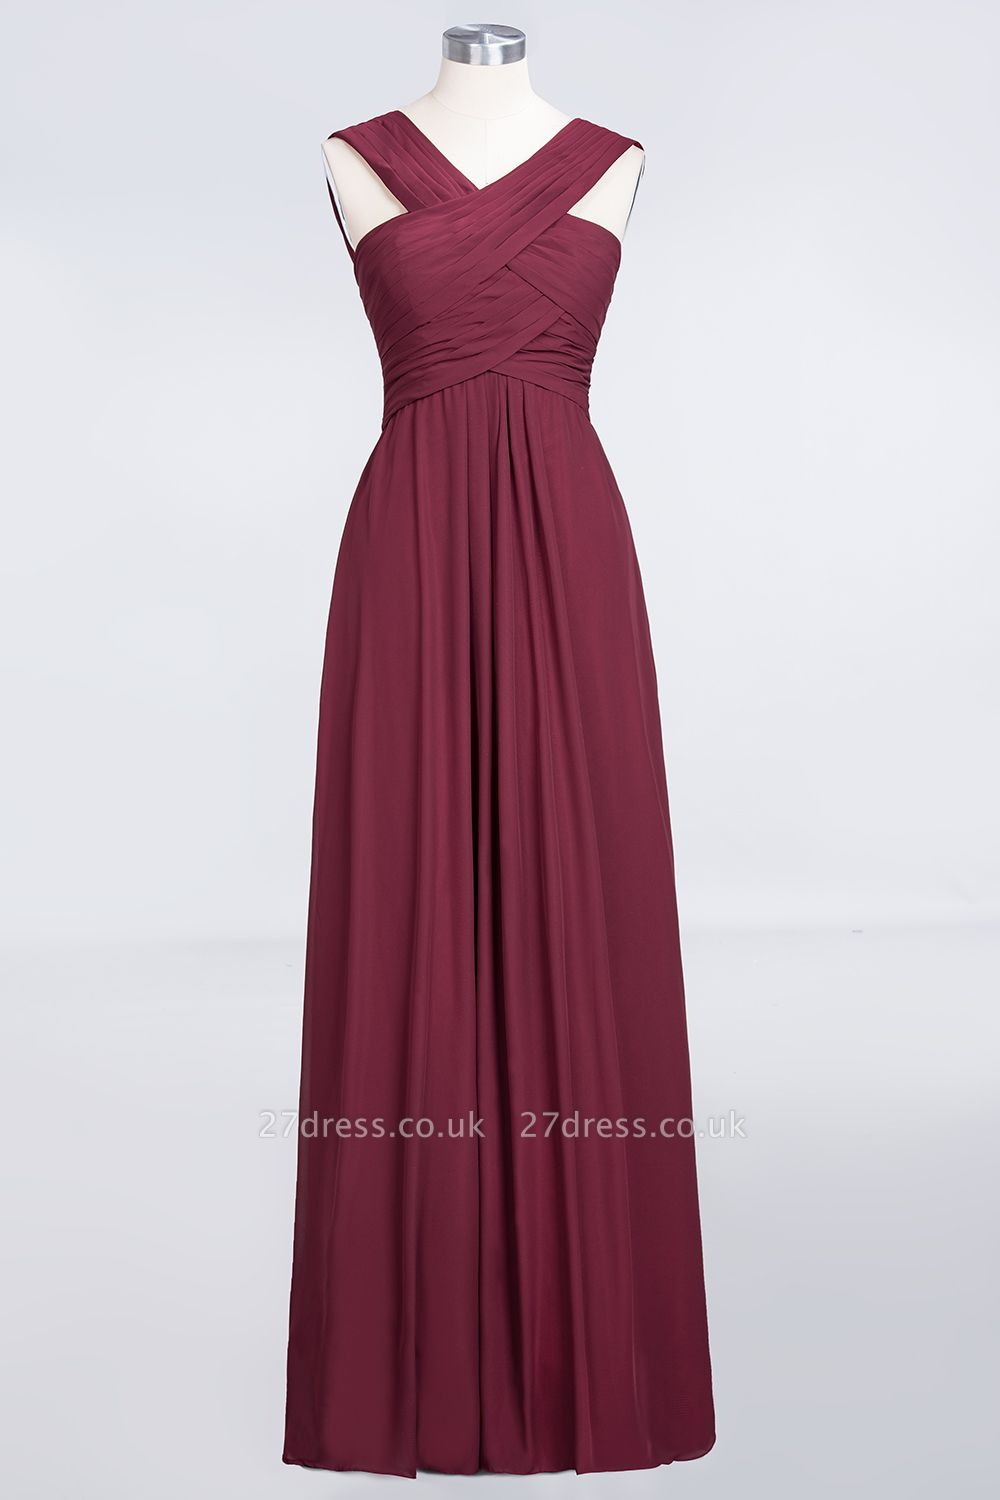 Sexy A-line Flowy Alluring V-neck Straps Sleeveless Floor-Length Bridesmaid Dress UK UK with Ruffles